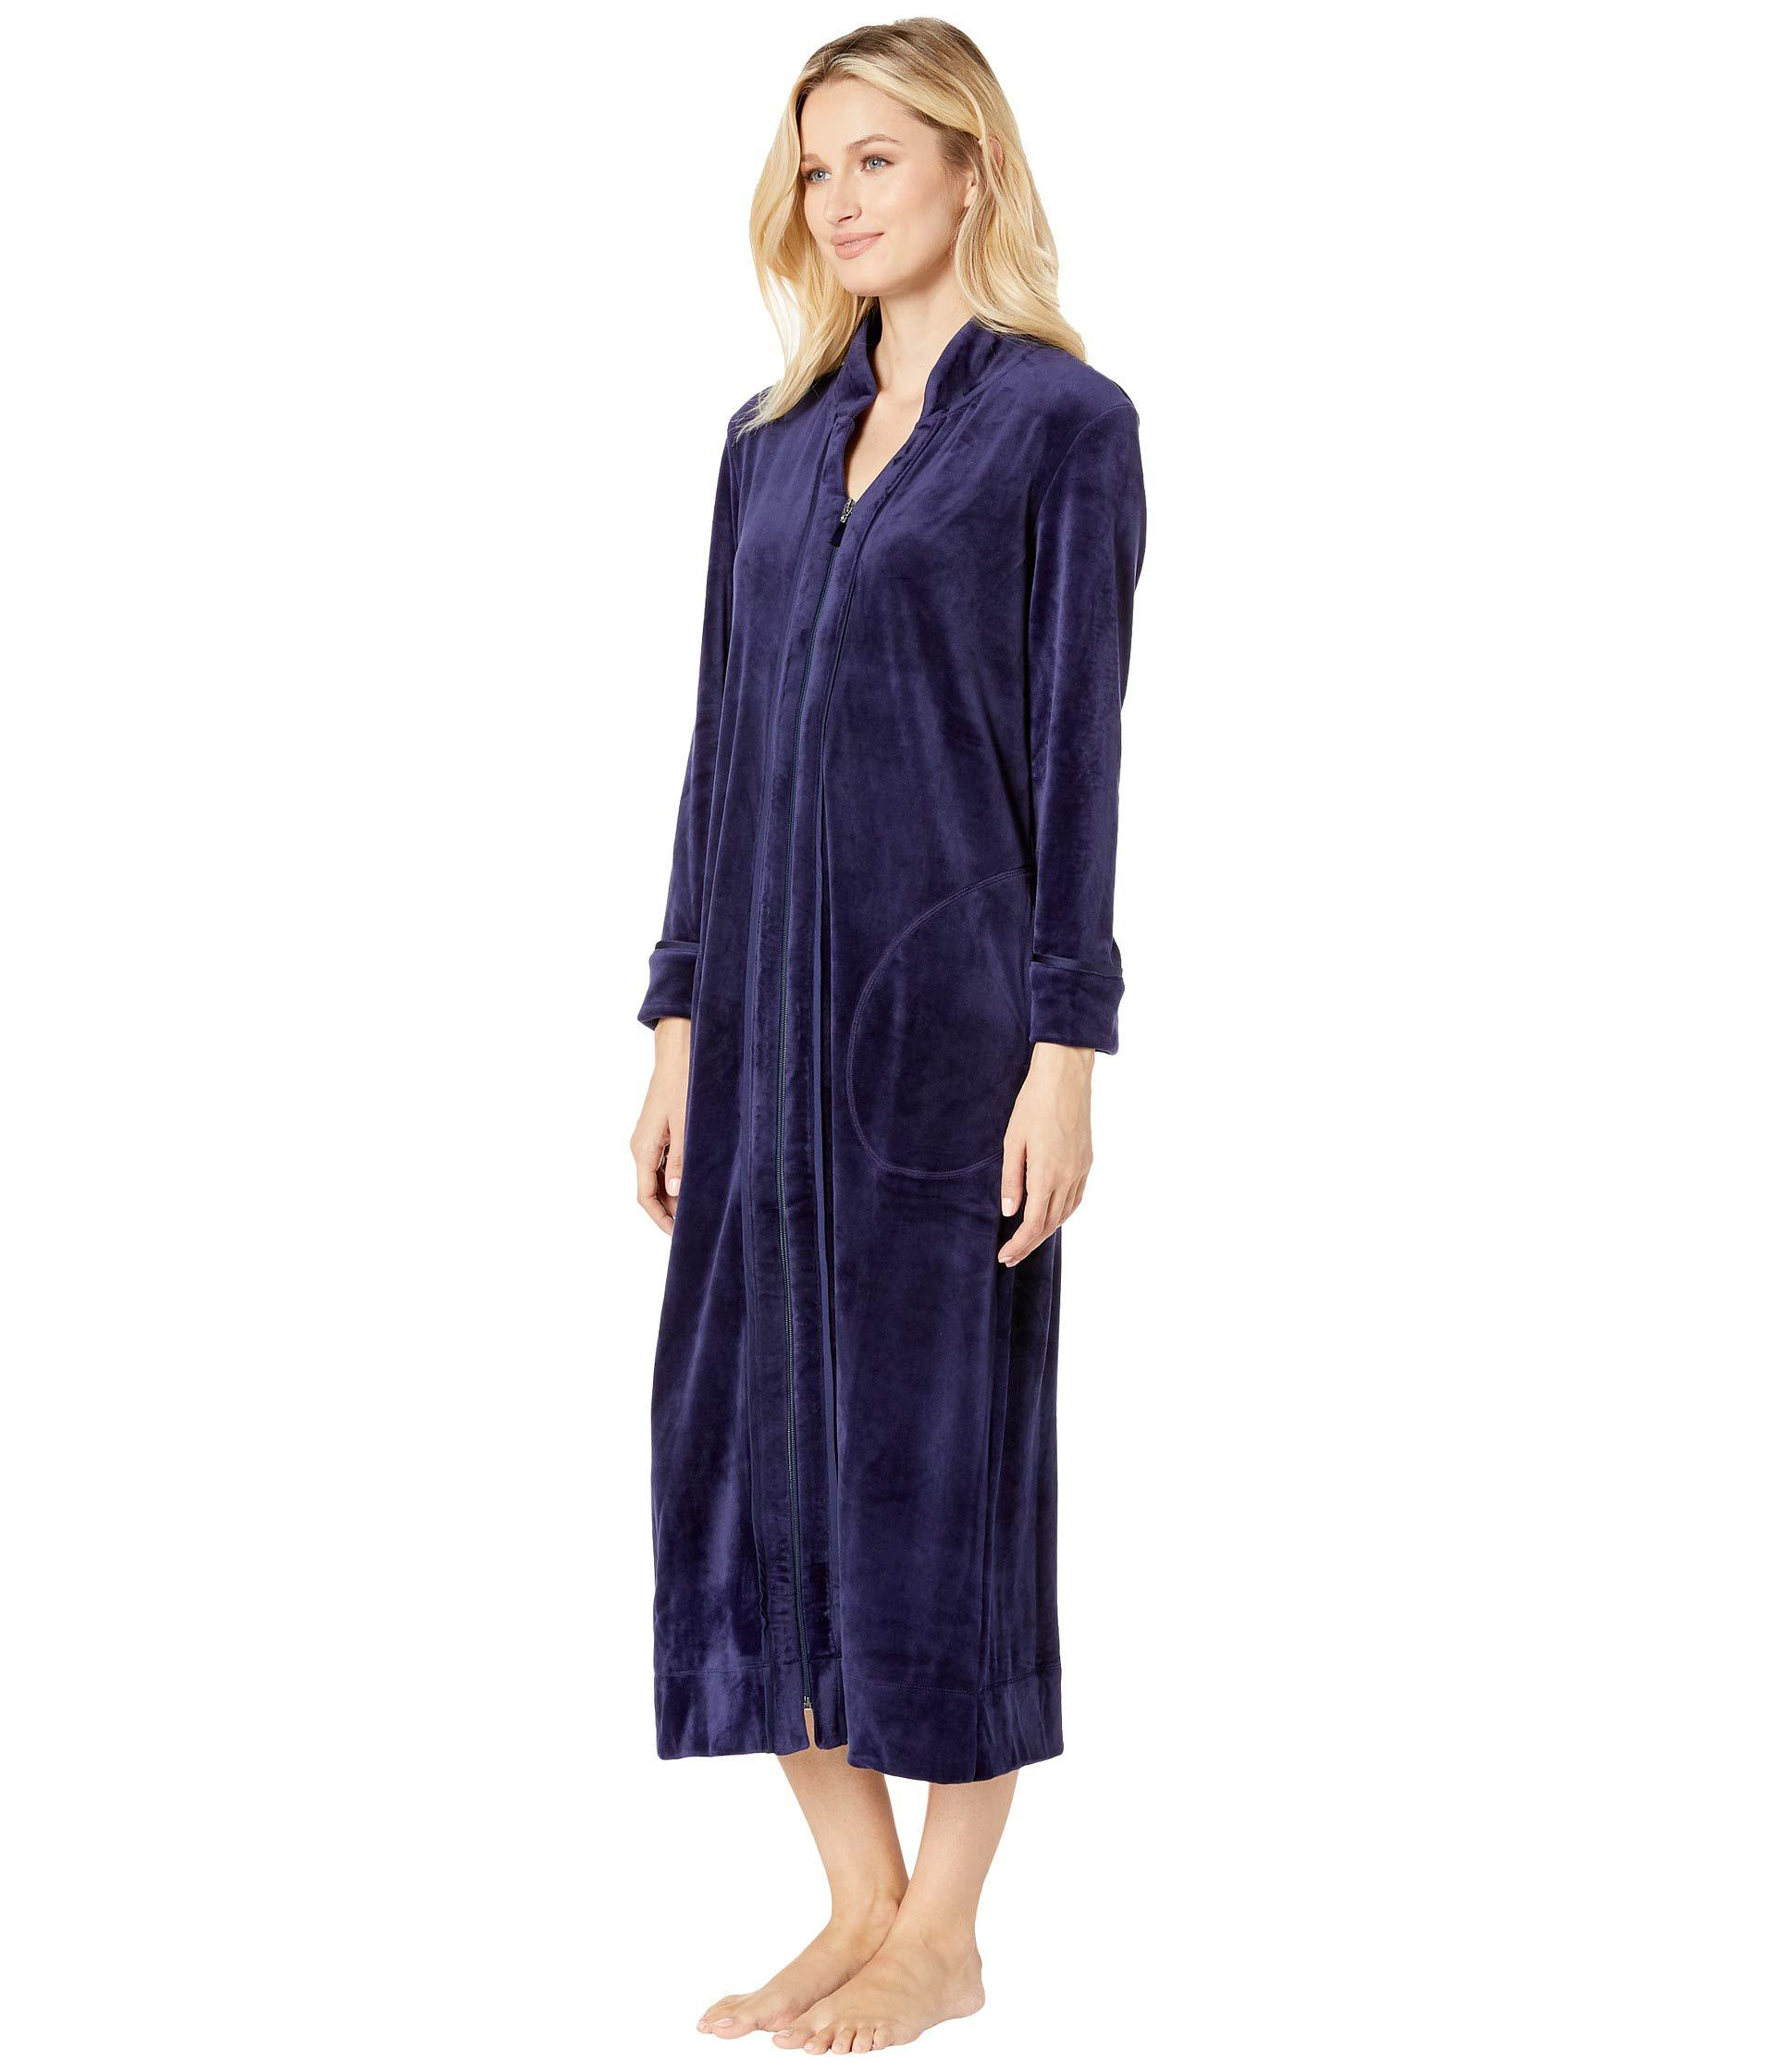 Lyst - Carole Hochman Plush Luxe Velour Long Zip Robe (navy) Women s Robe  in Blue d512deecb